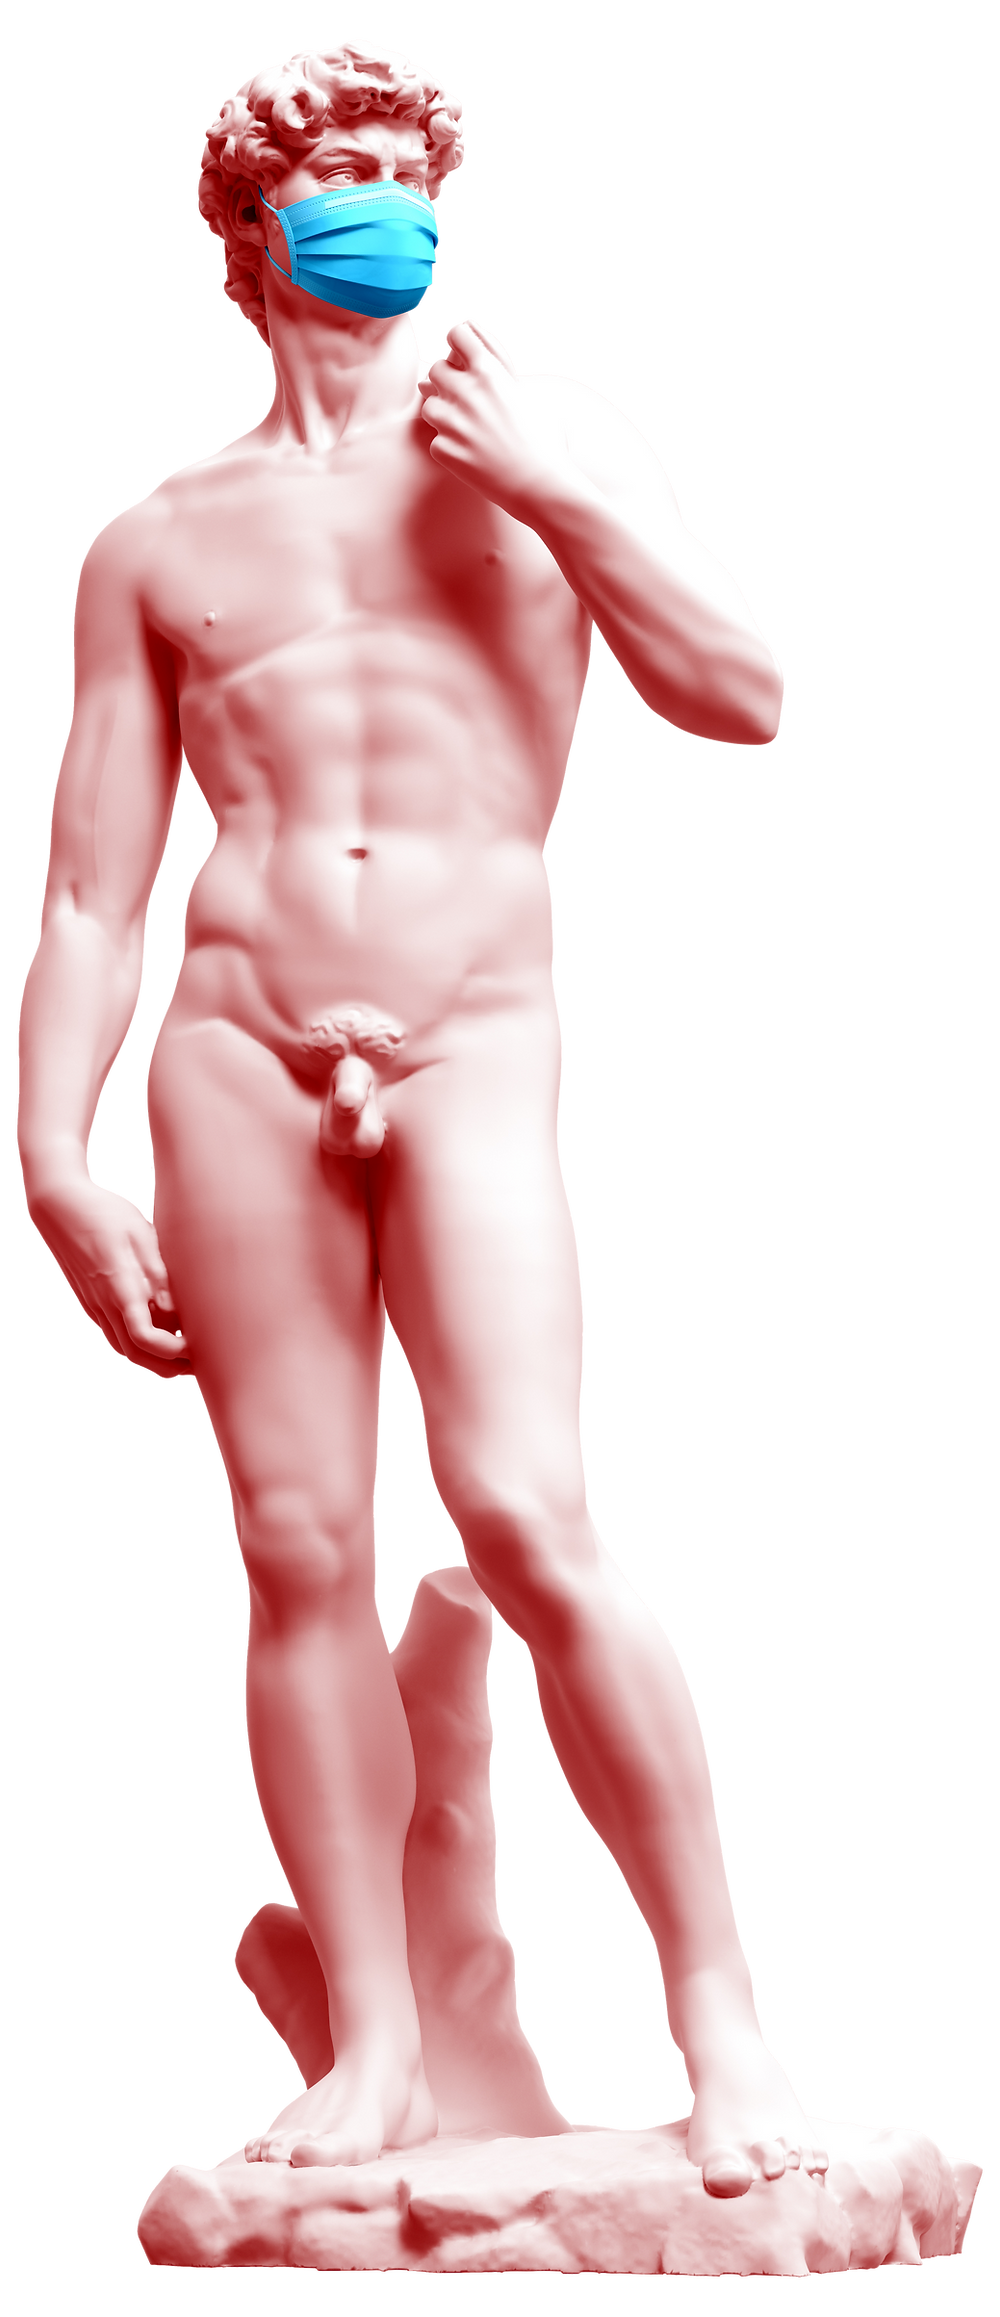 Michelangelo's David with COVID mask